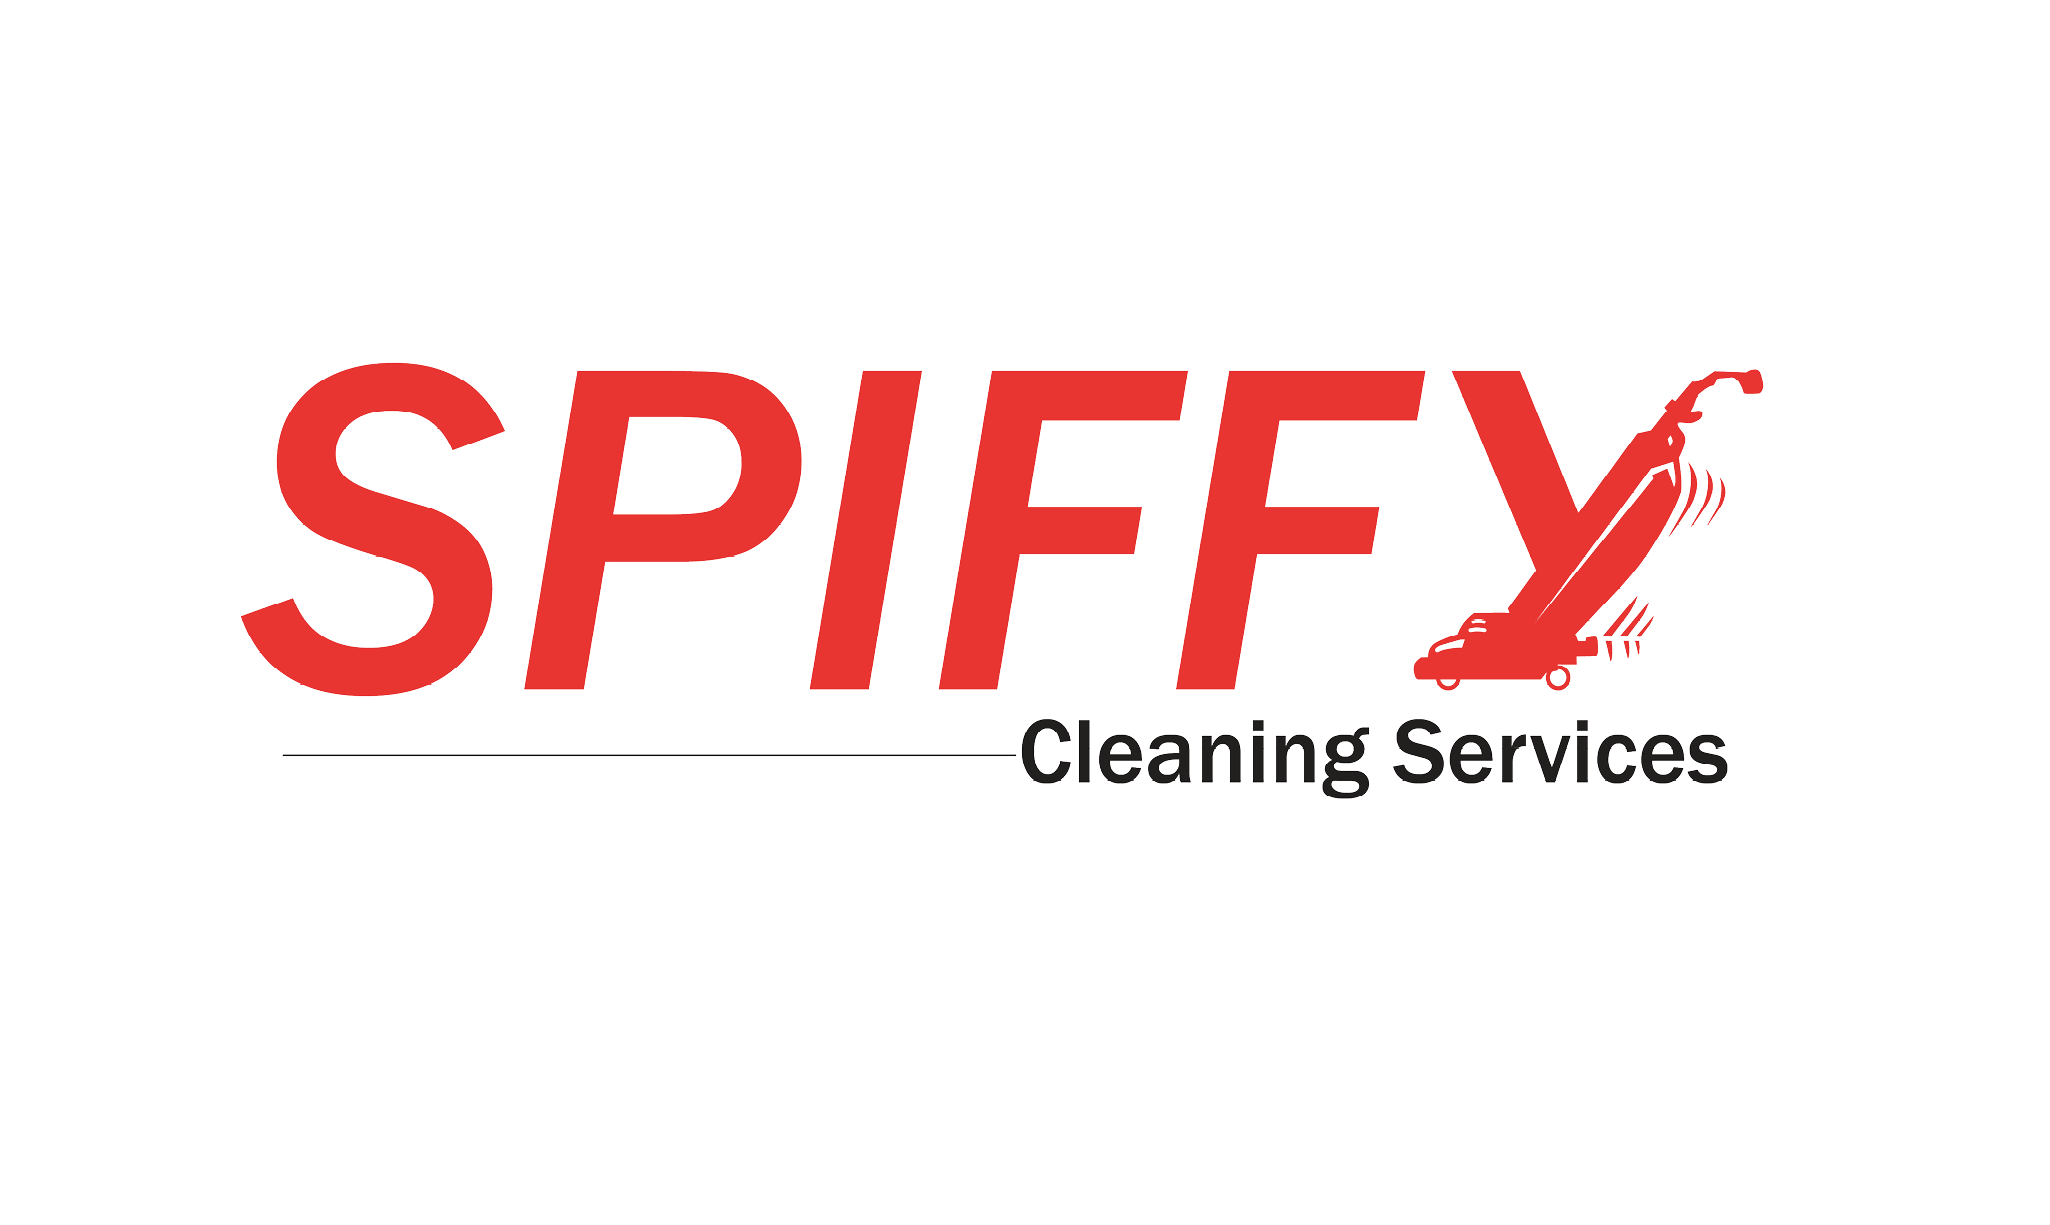 Spiffy Cleaning Services